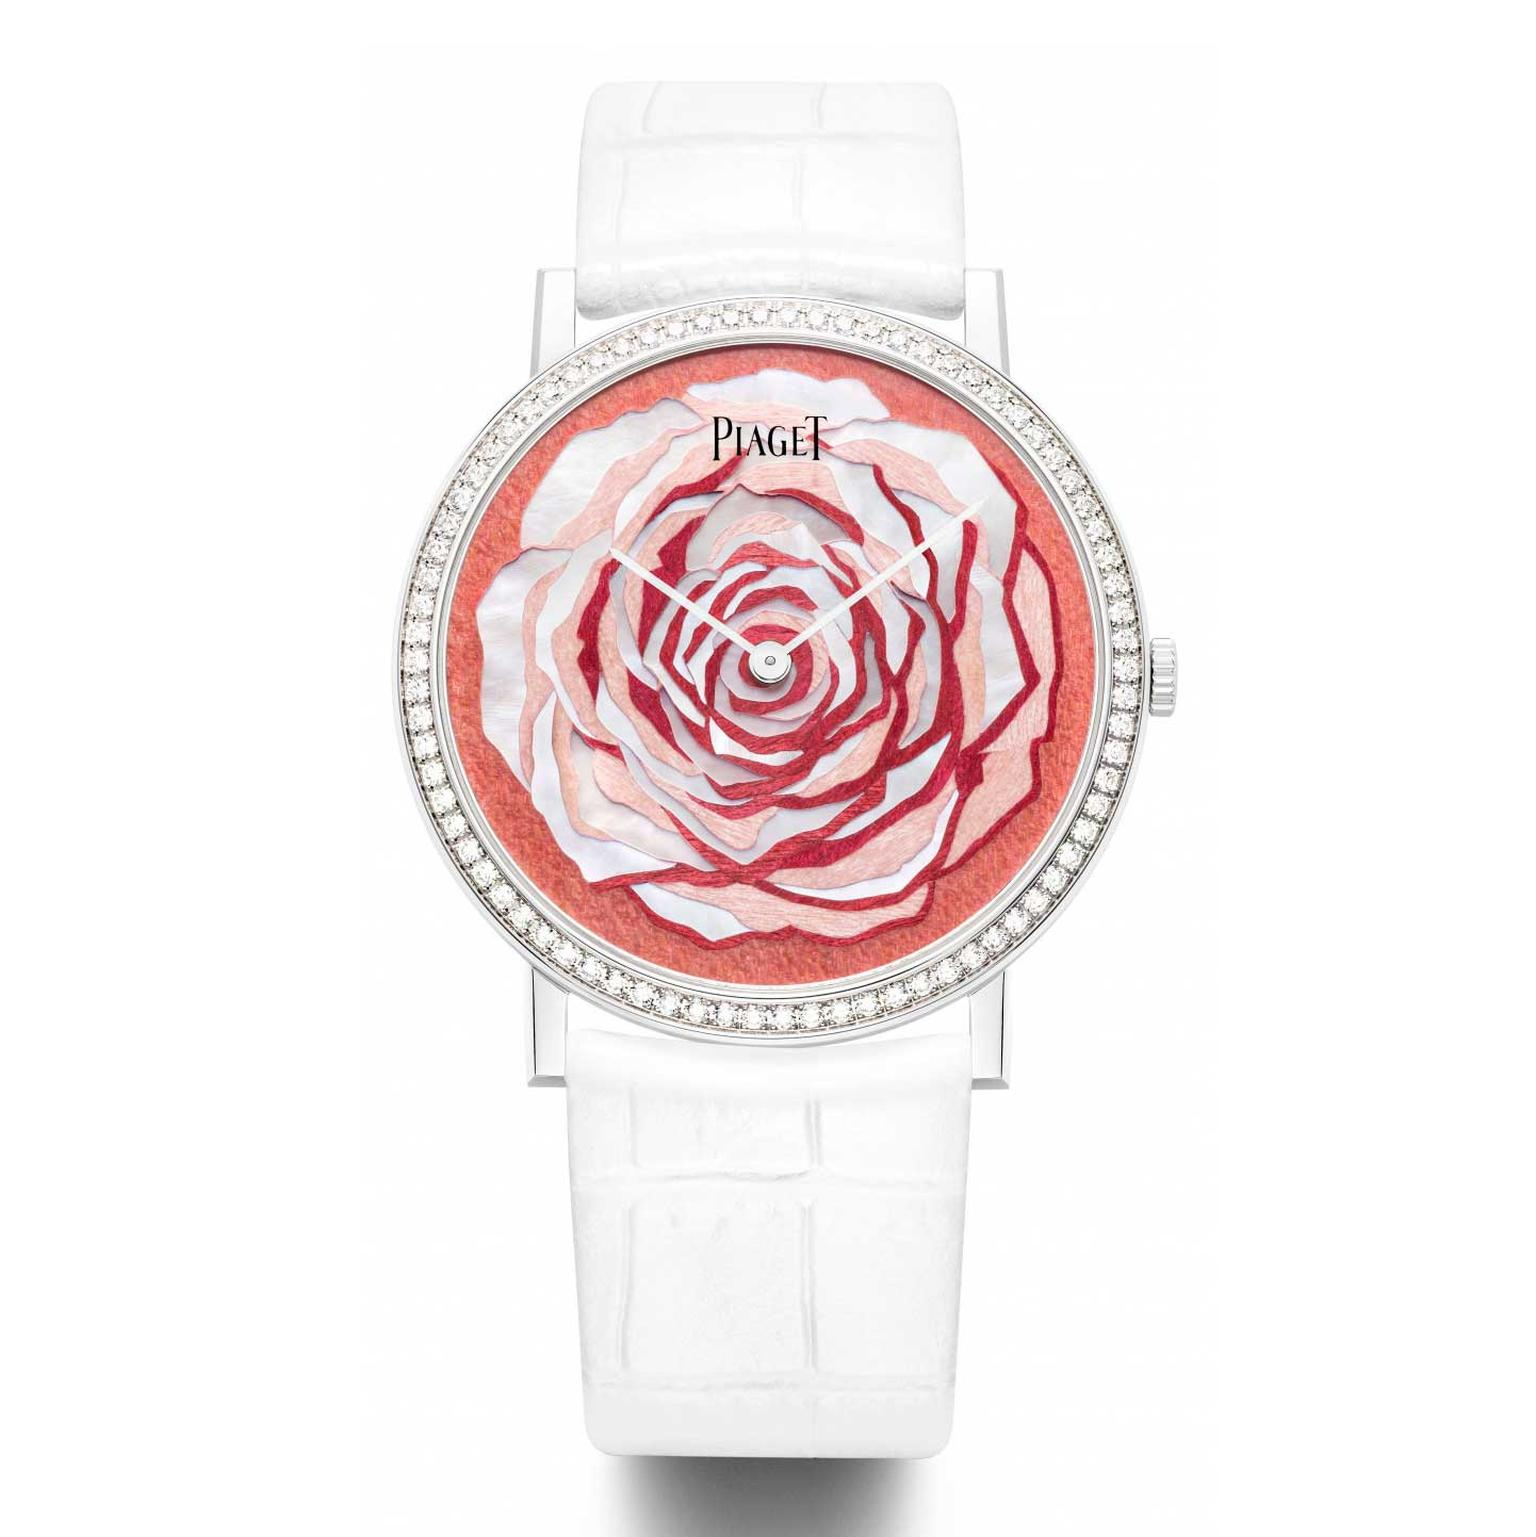 Piaget Altiplano dial in white mother-of-pearl and wood marquetry by Rose Saneuil